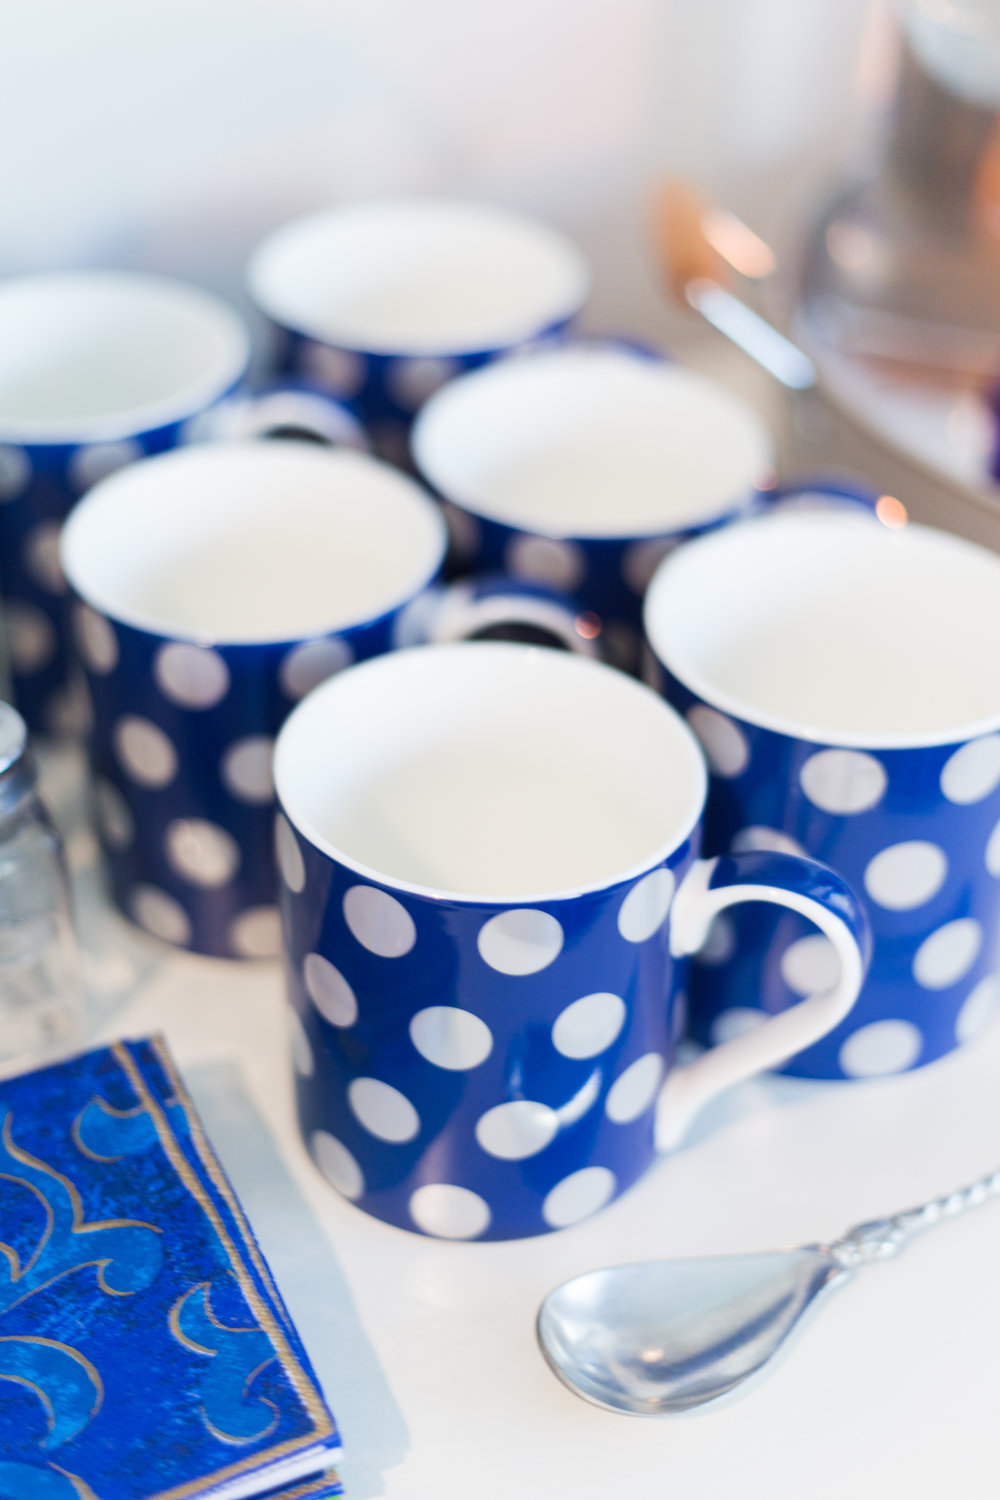 Coffee bar station - blue mugs from At Home stores